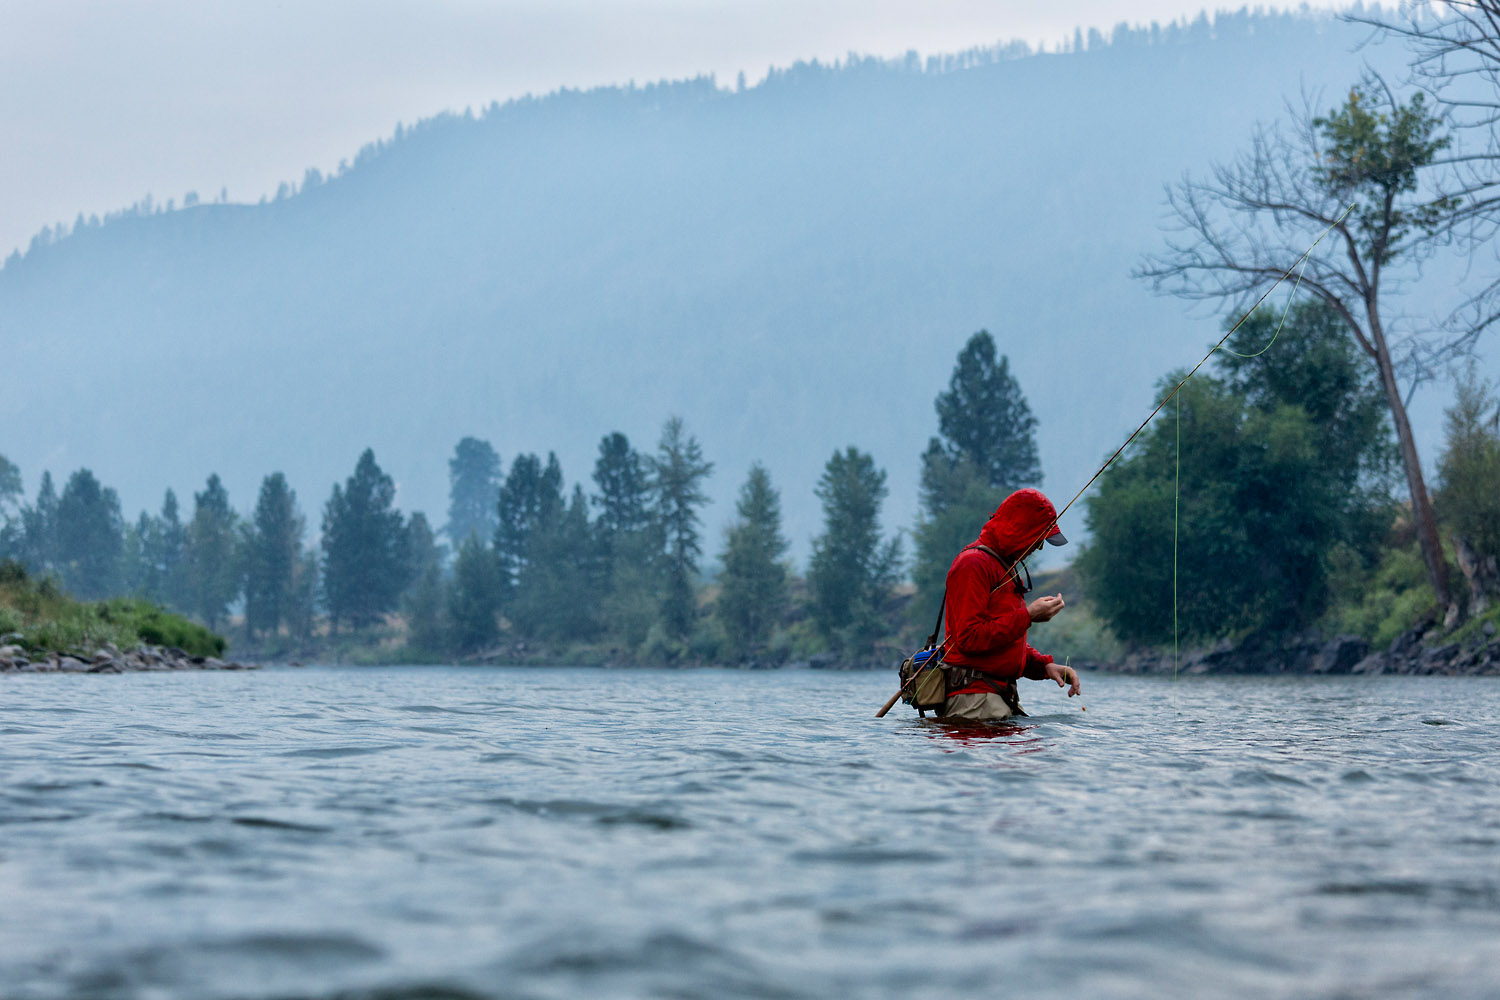 Lifestyle: Scott Schell fly fishing on the Methow River, Methow Valley, Washington